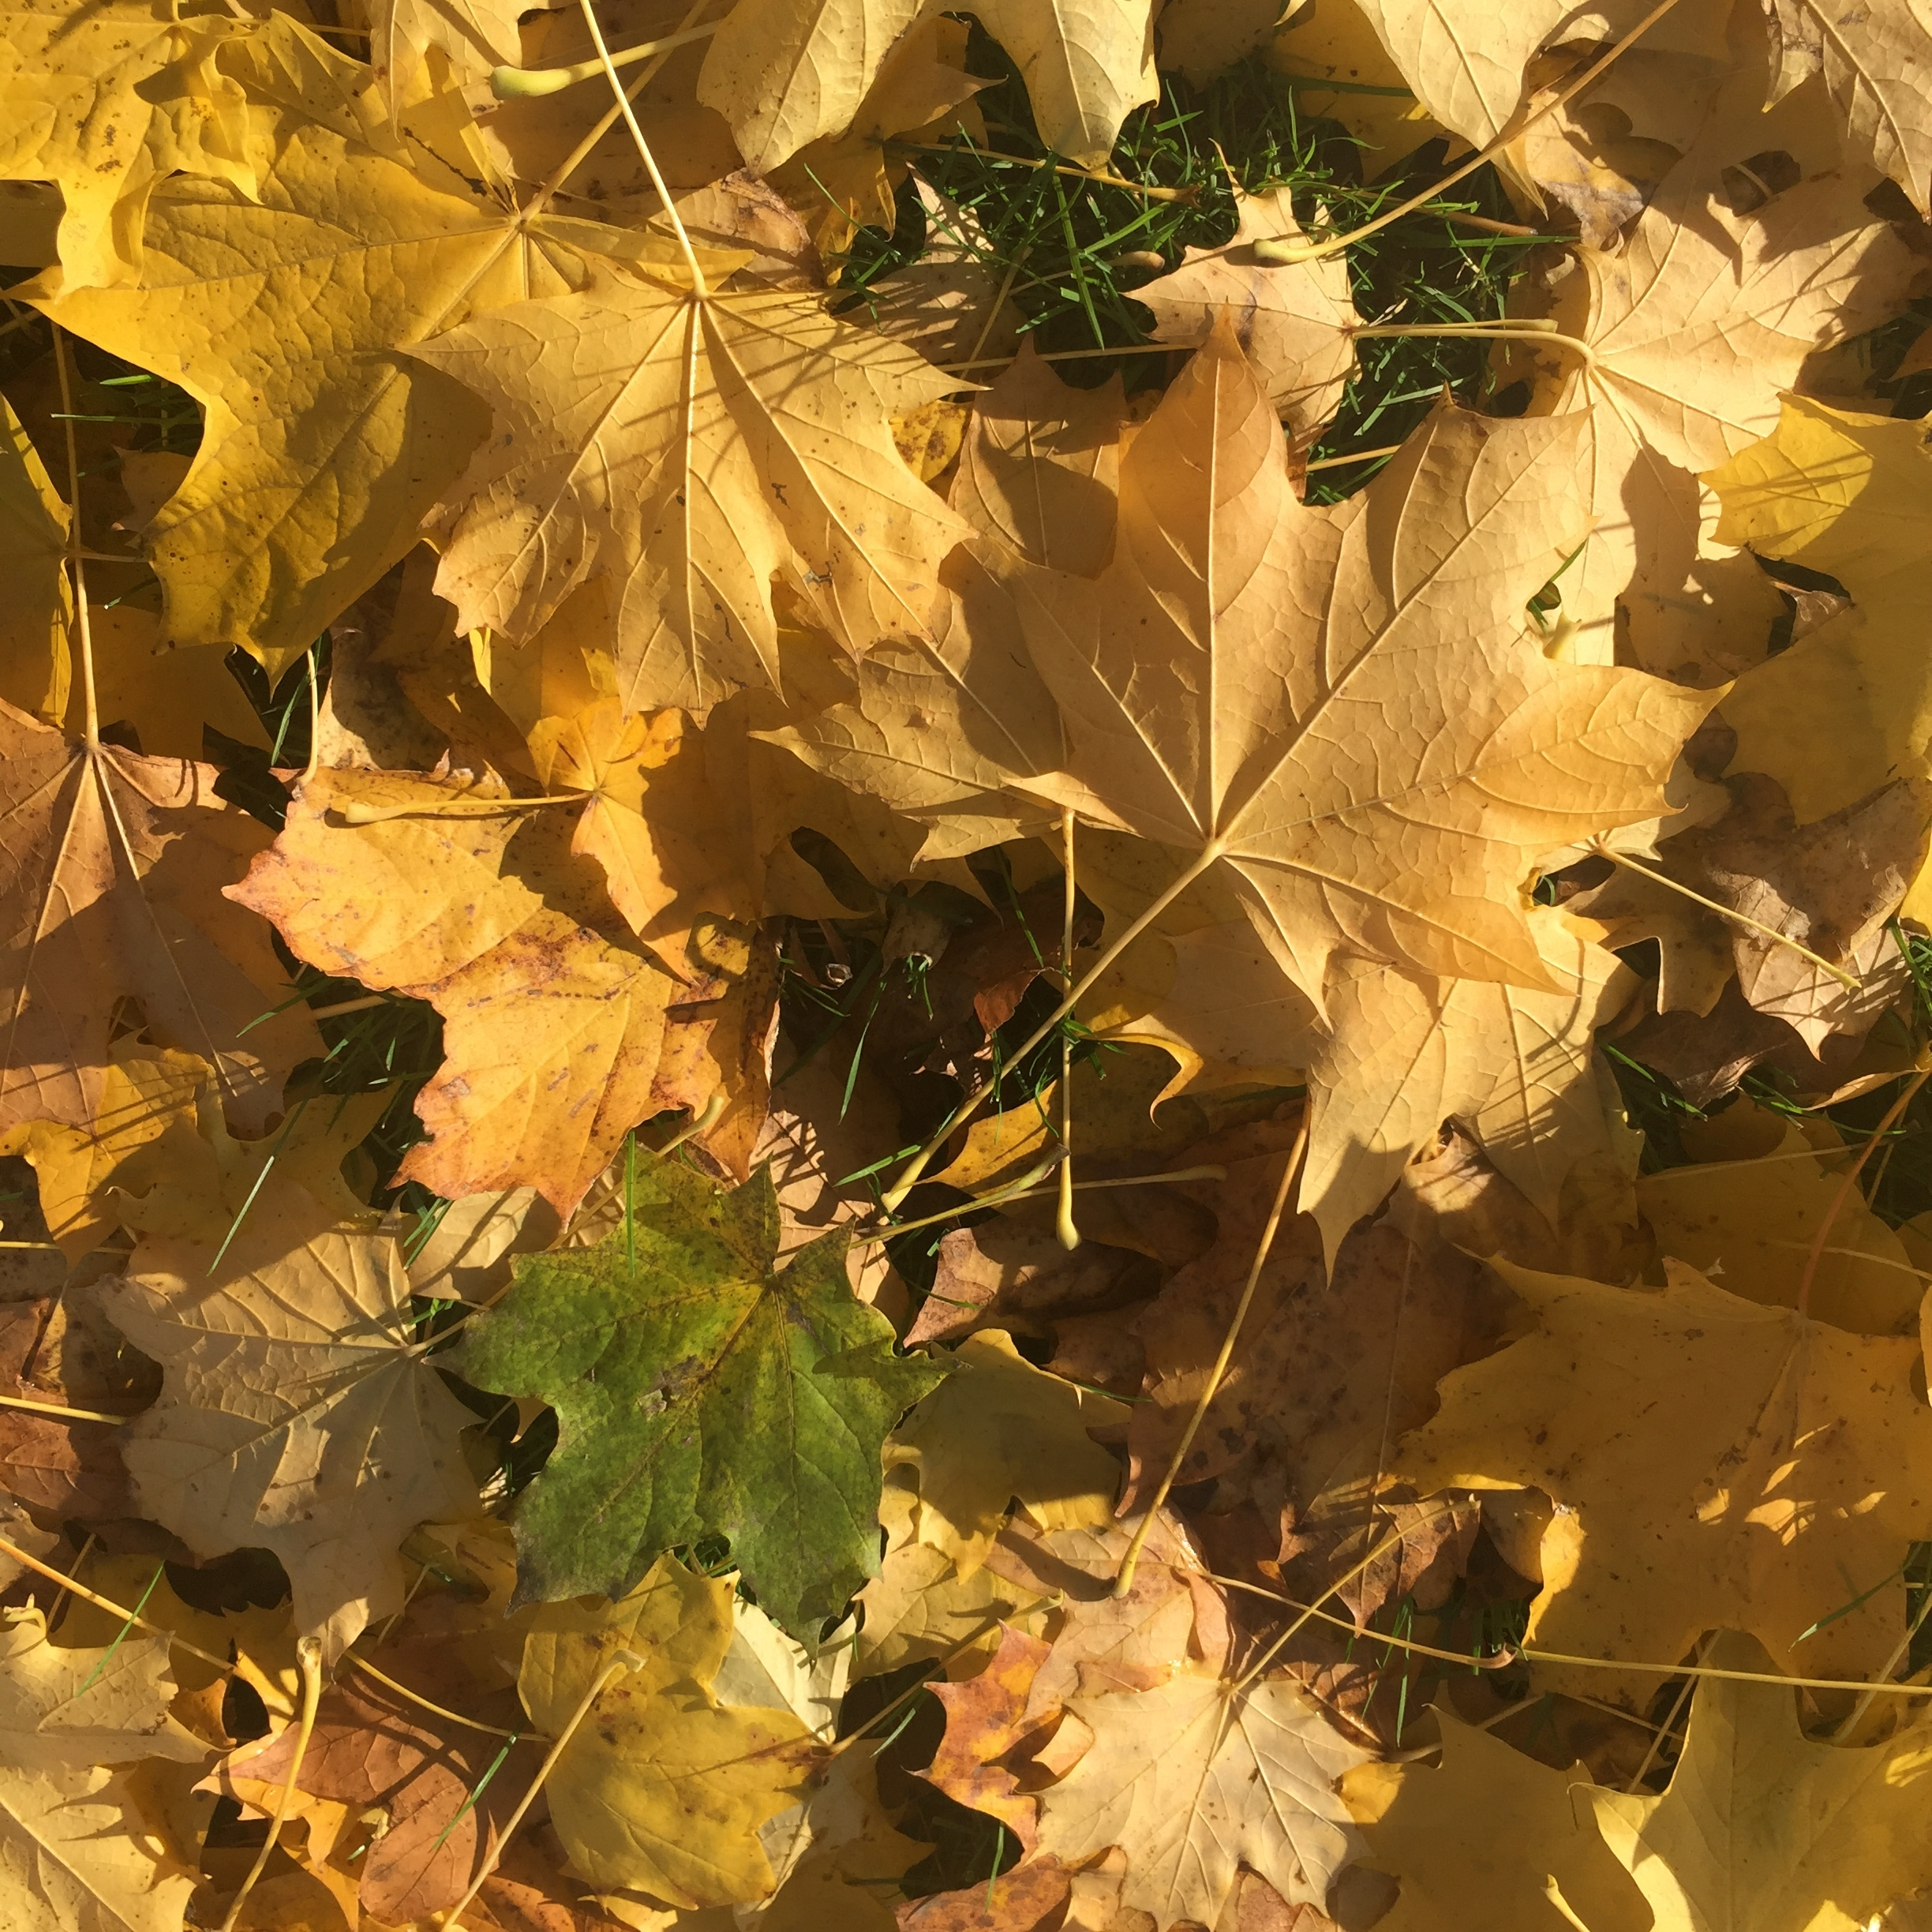 Yellow maple leaves laying on grass.